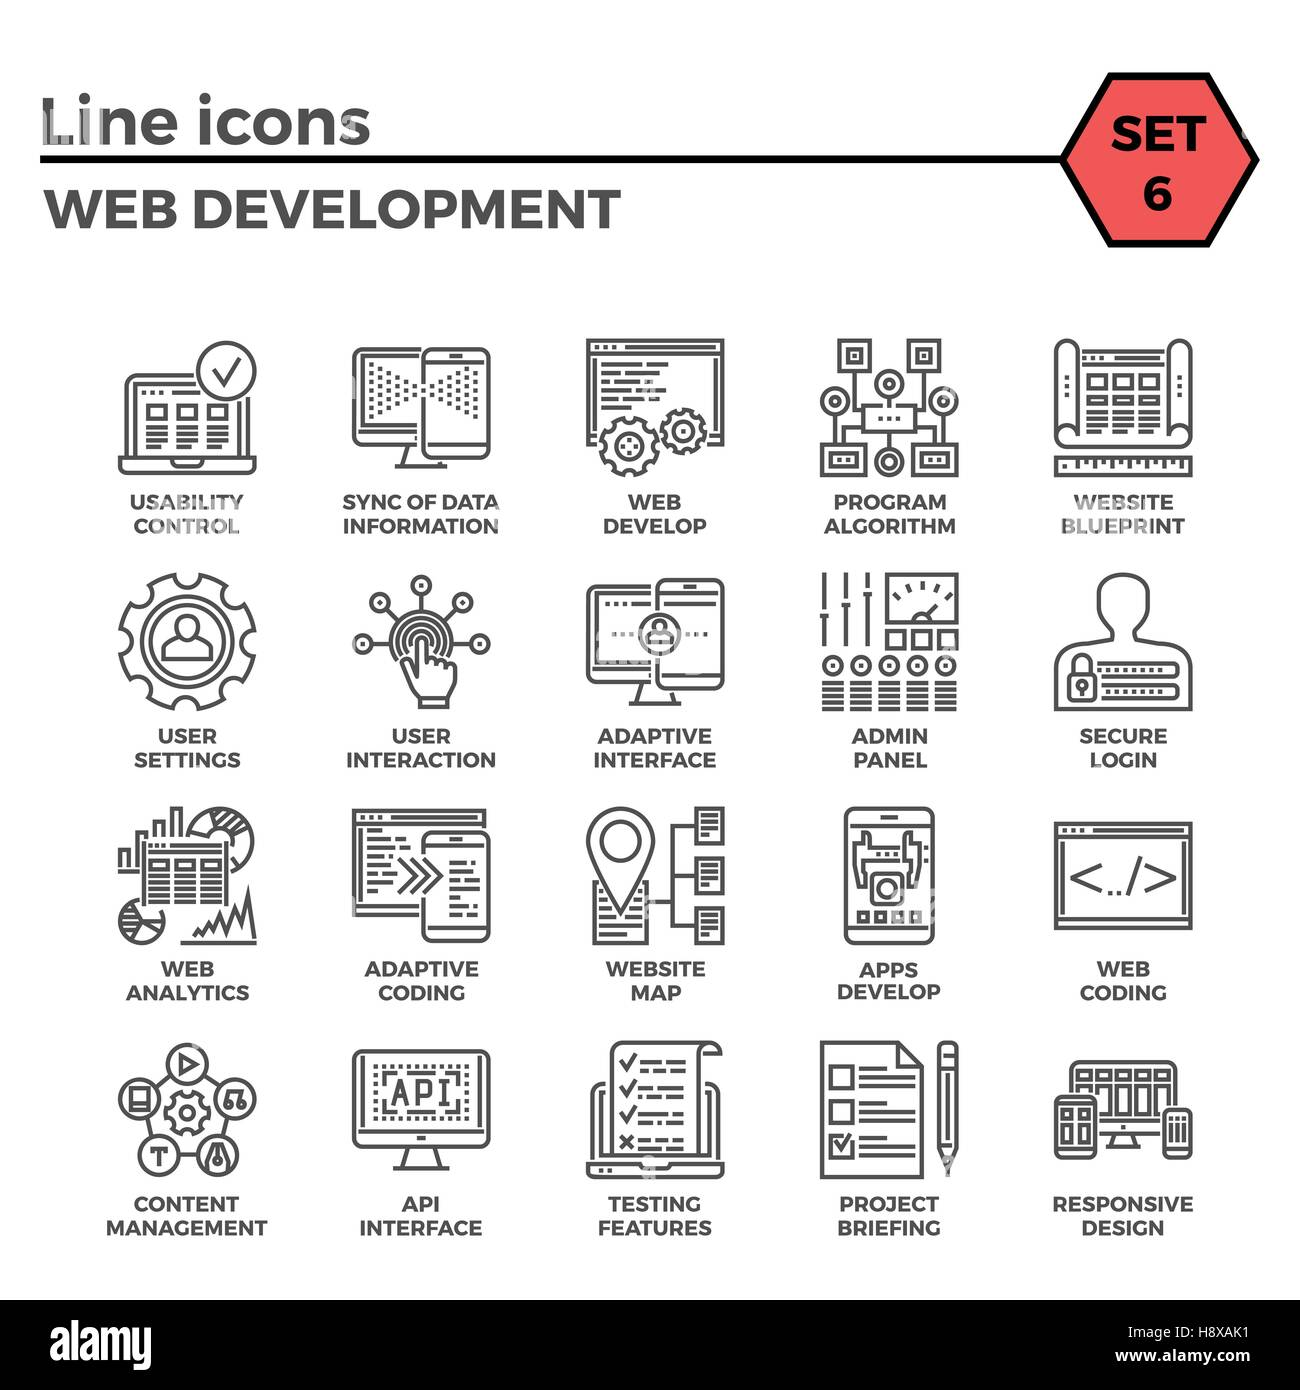 Blueprint Icon Flat Vector Related Stockfotos & Blueprint Icon Flat ...